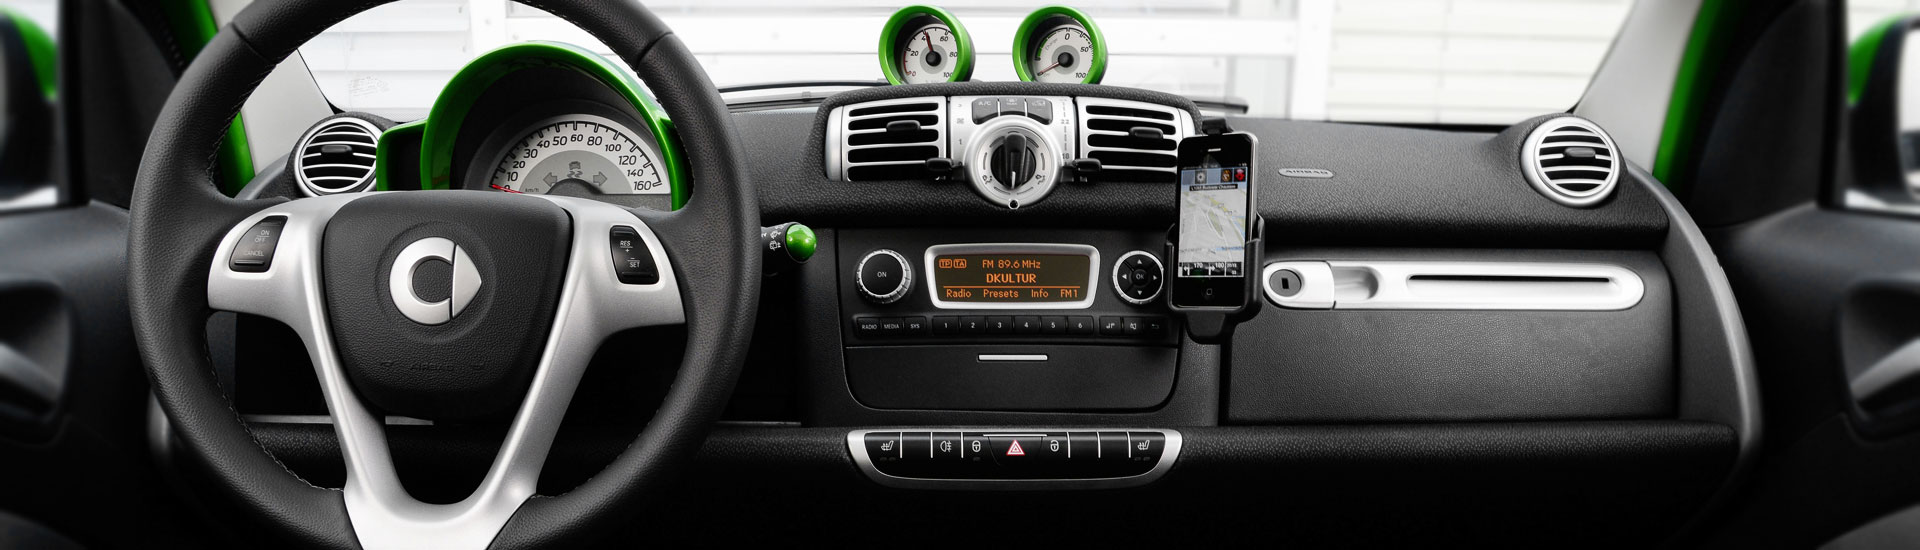 smart Fortwo Custom Dash Kits